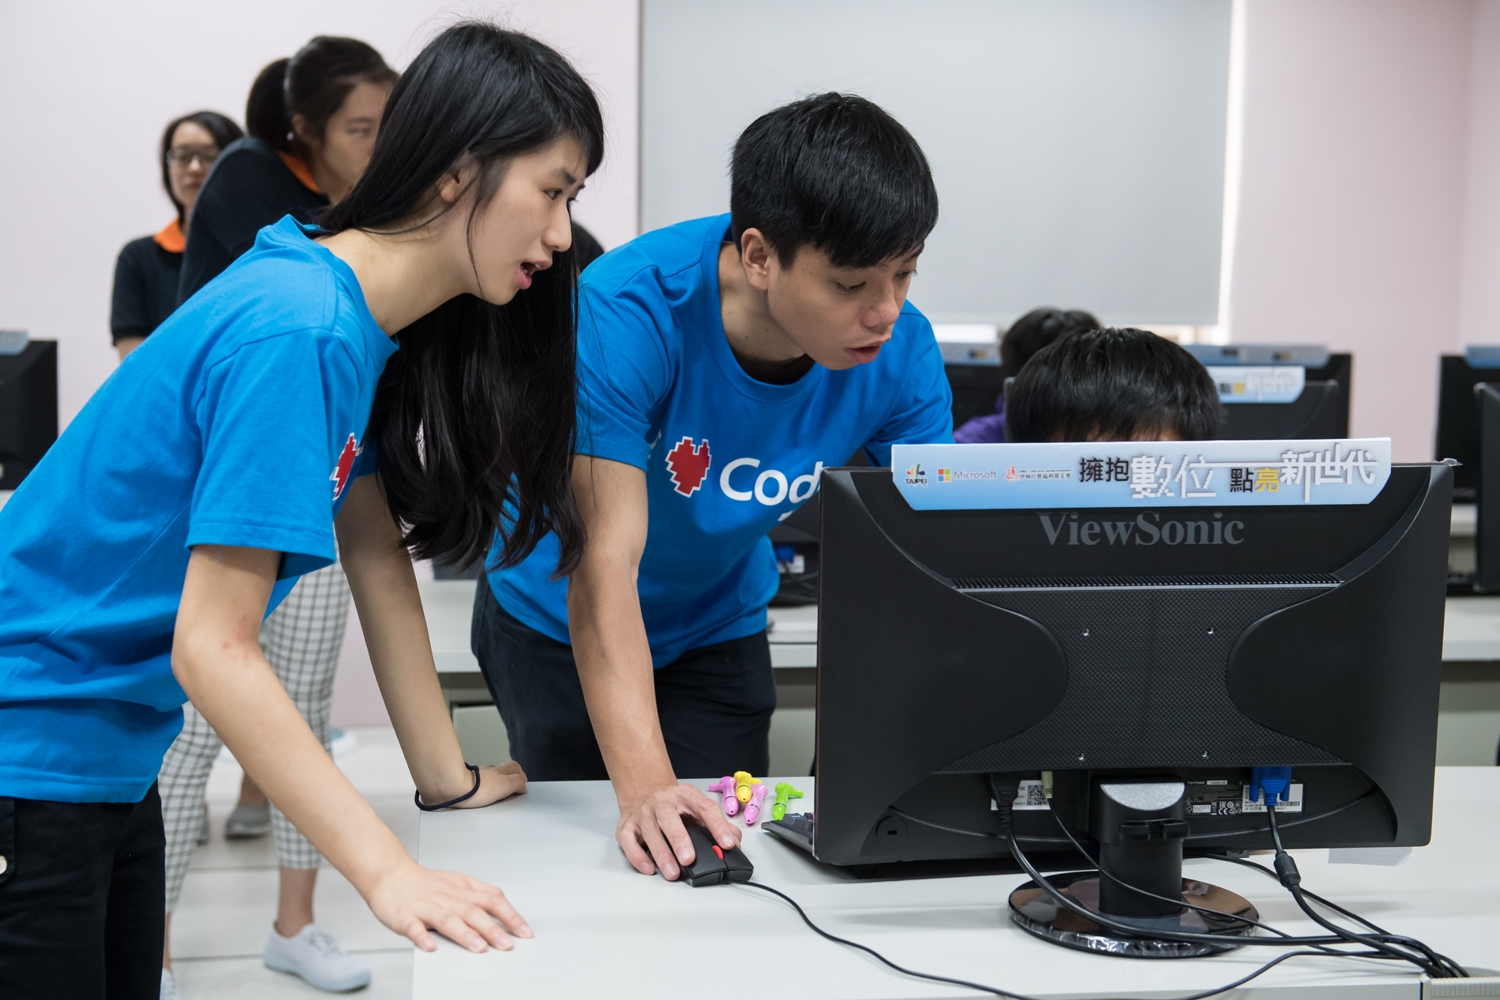 Instructed students how to operate SWAY software